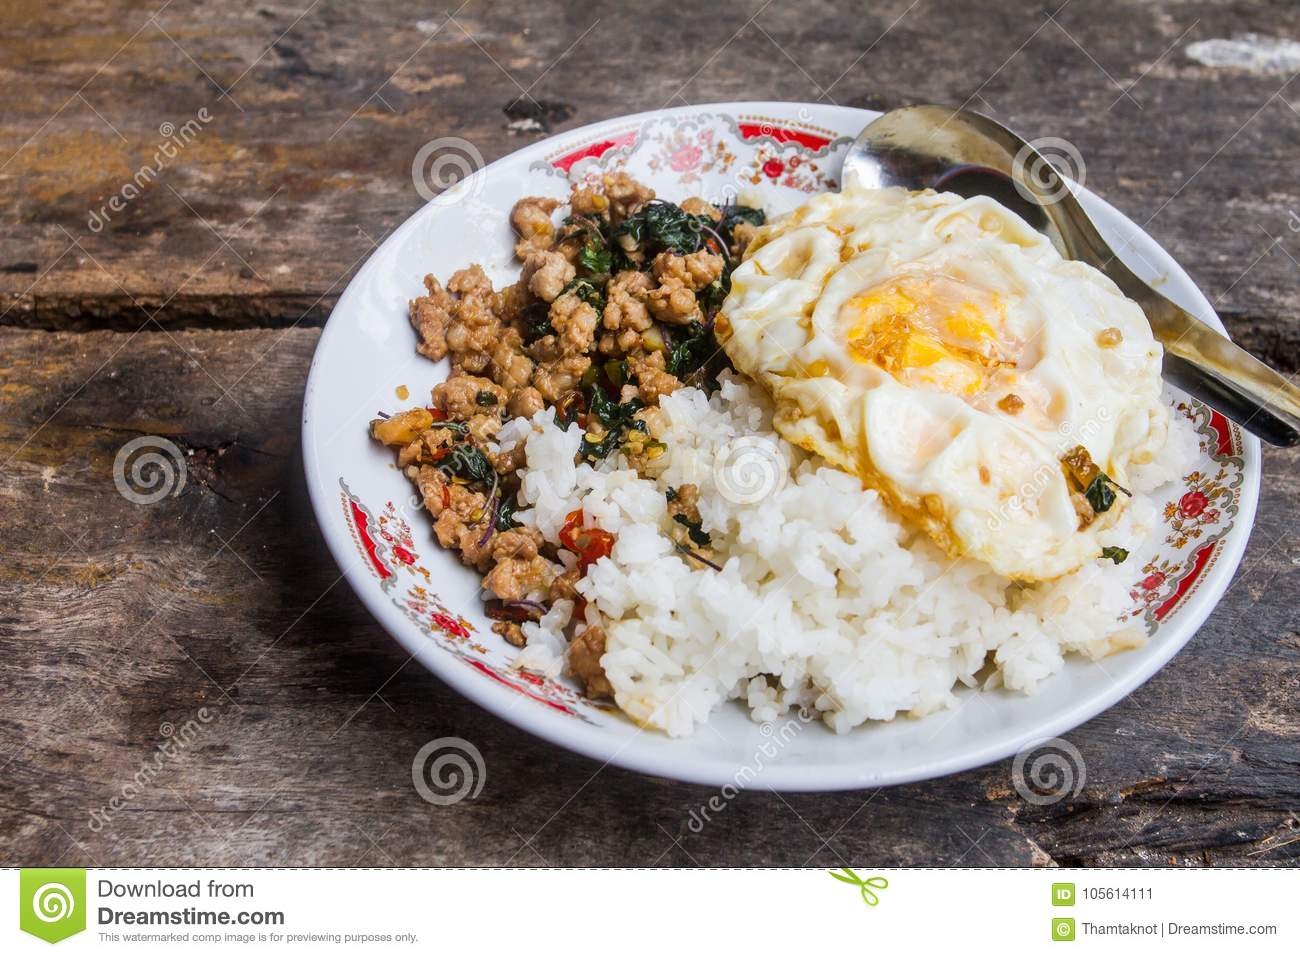 Rice topped with stir-fried pork with basil and fried Egg, placed on a wooden floor, which is the background.